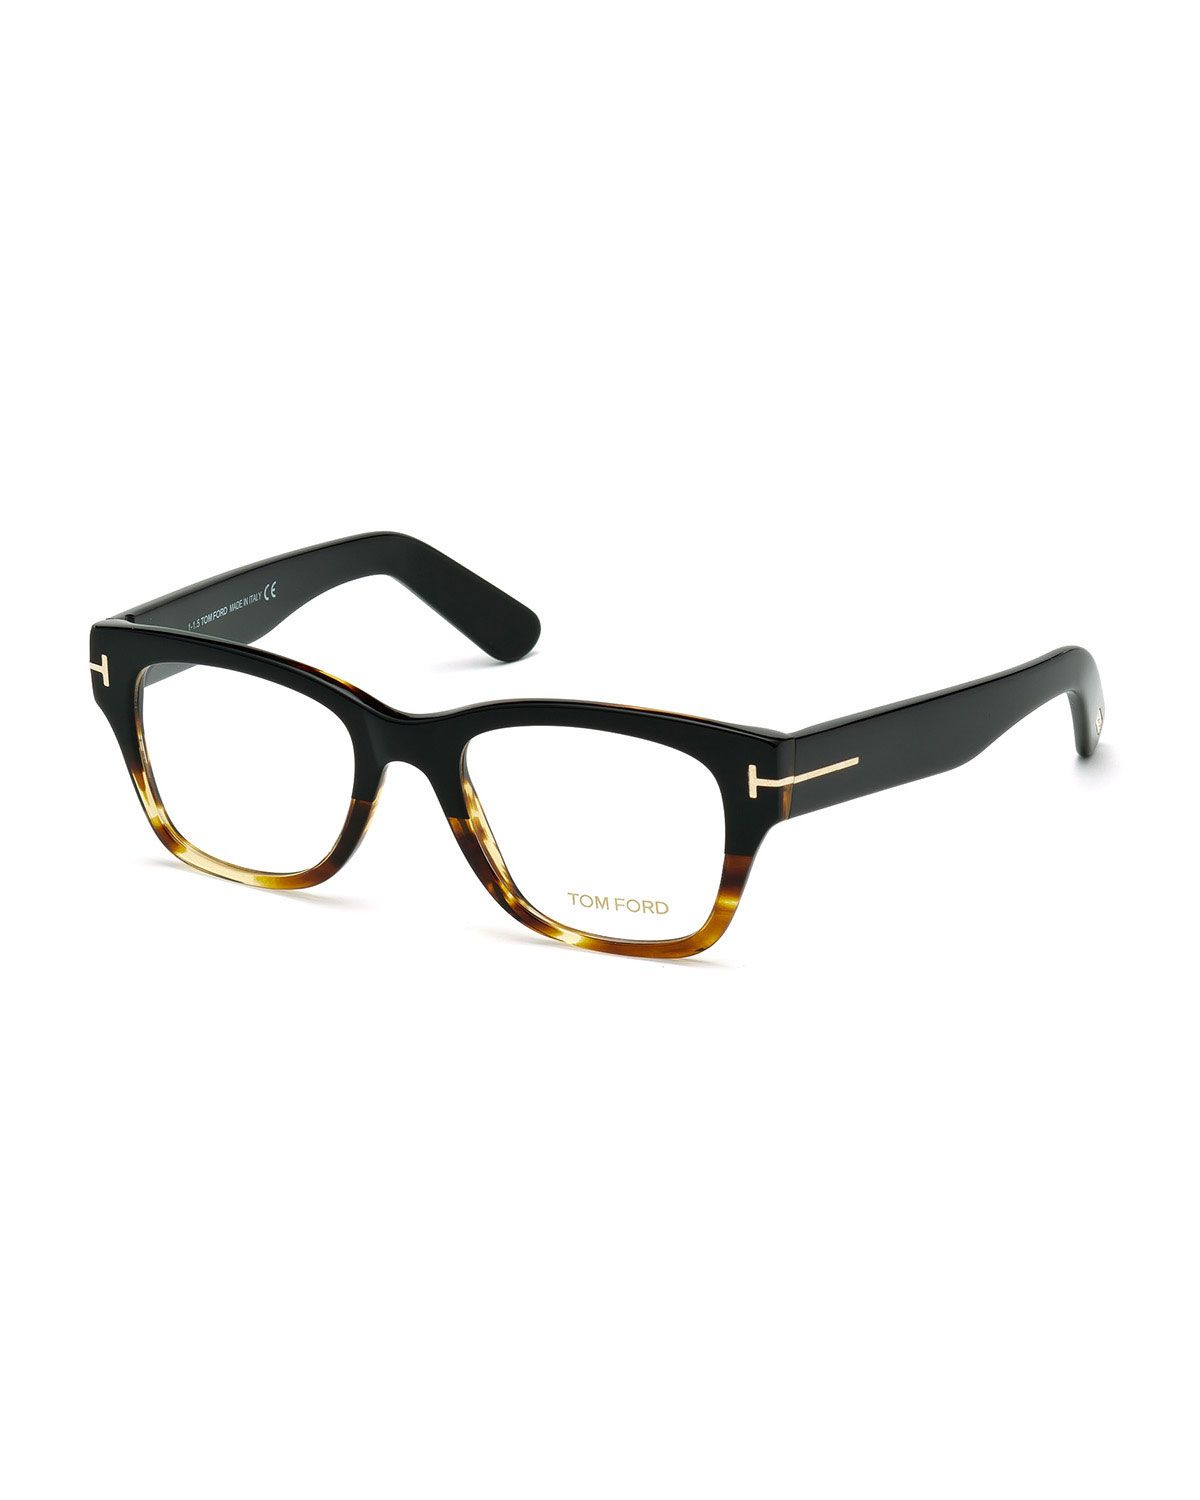 Tom Ford Large Gradient-Frame Eyeglasses, Black/Havana